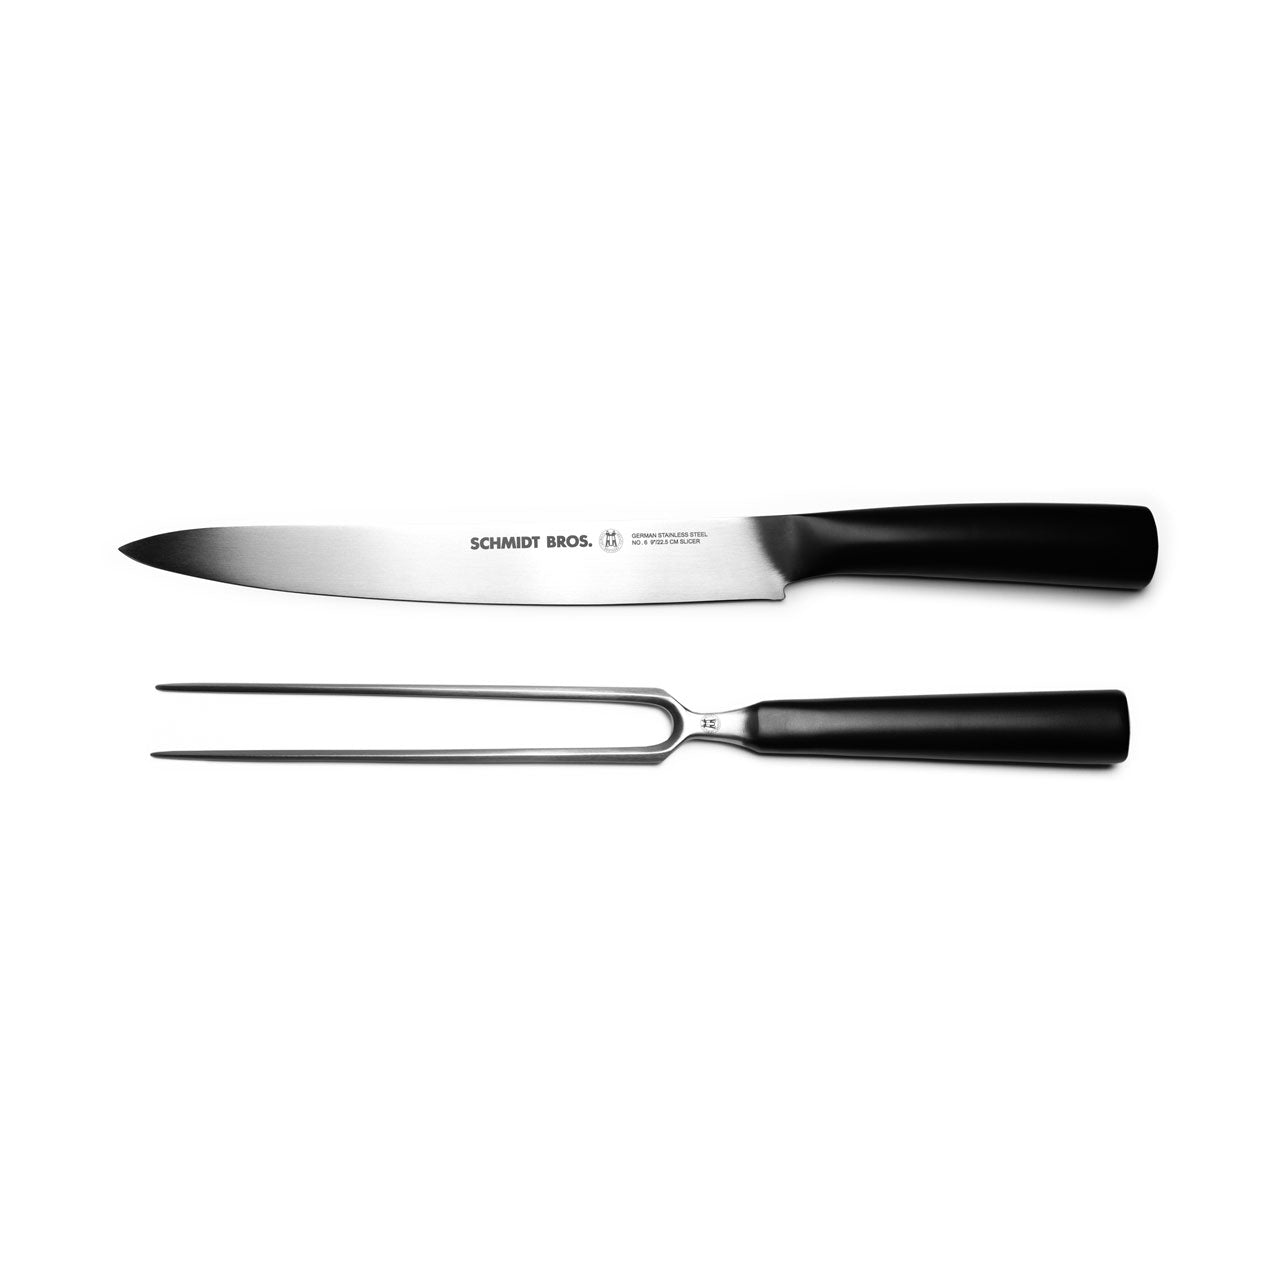 Schmidt Bros. Carbon Carving Set